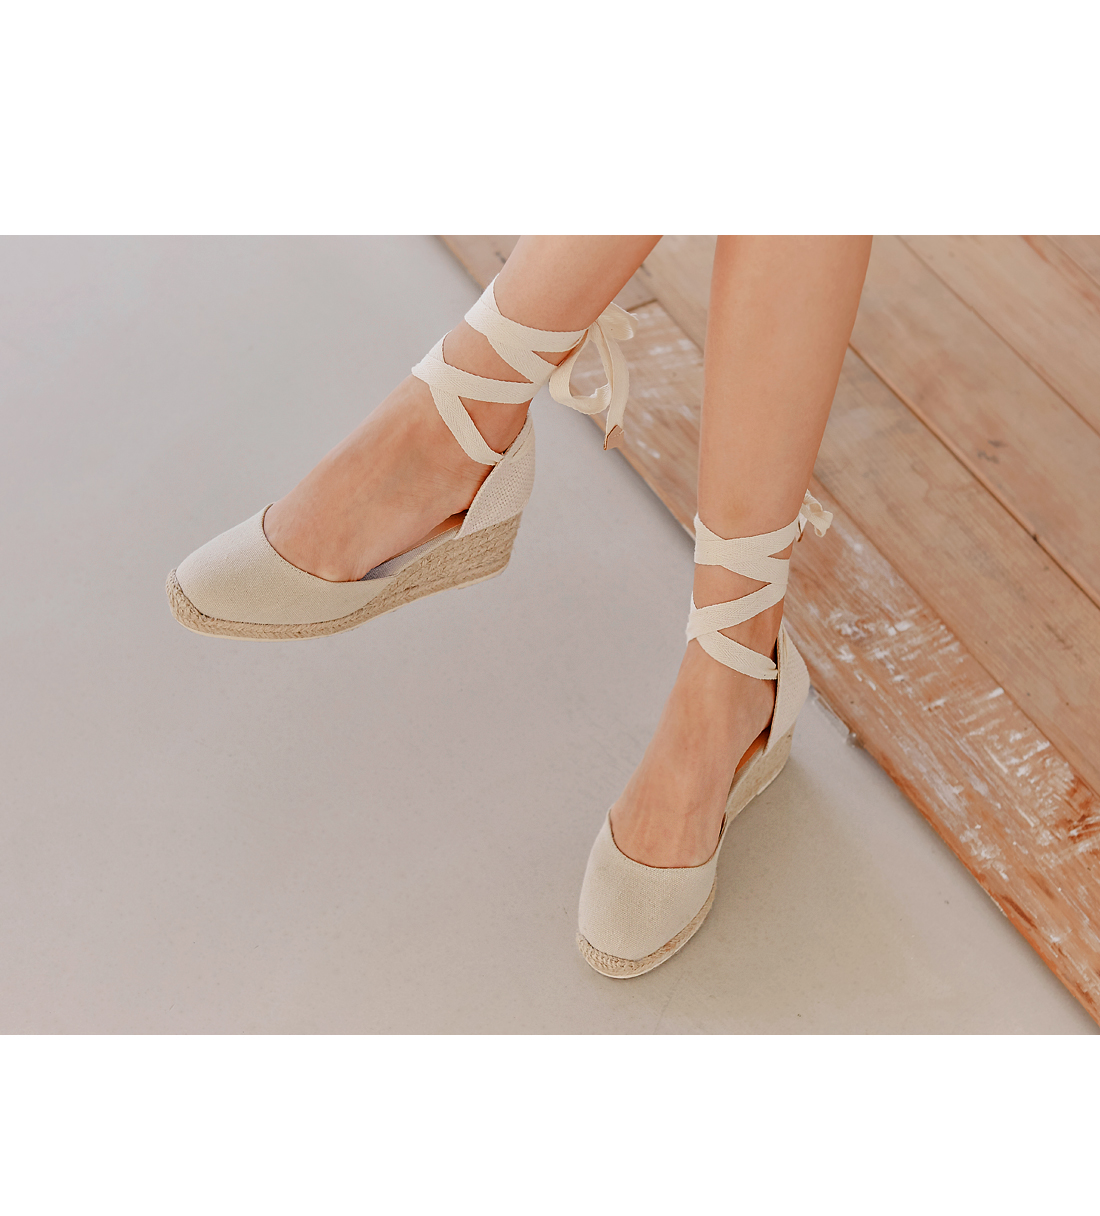 ESPADRILLE LACE-UP WEDGE HEEL